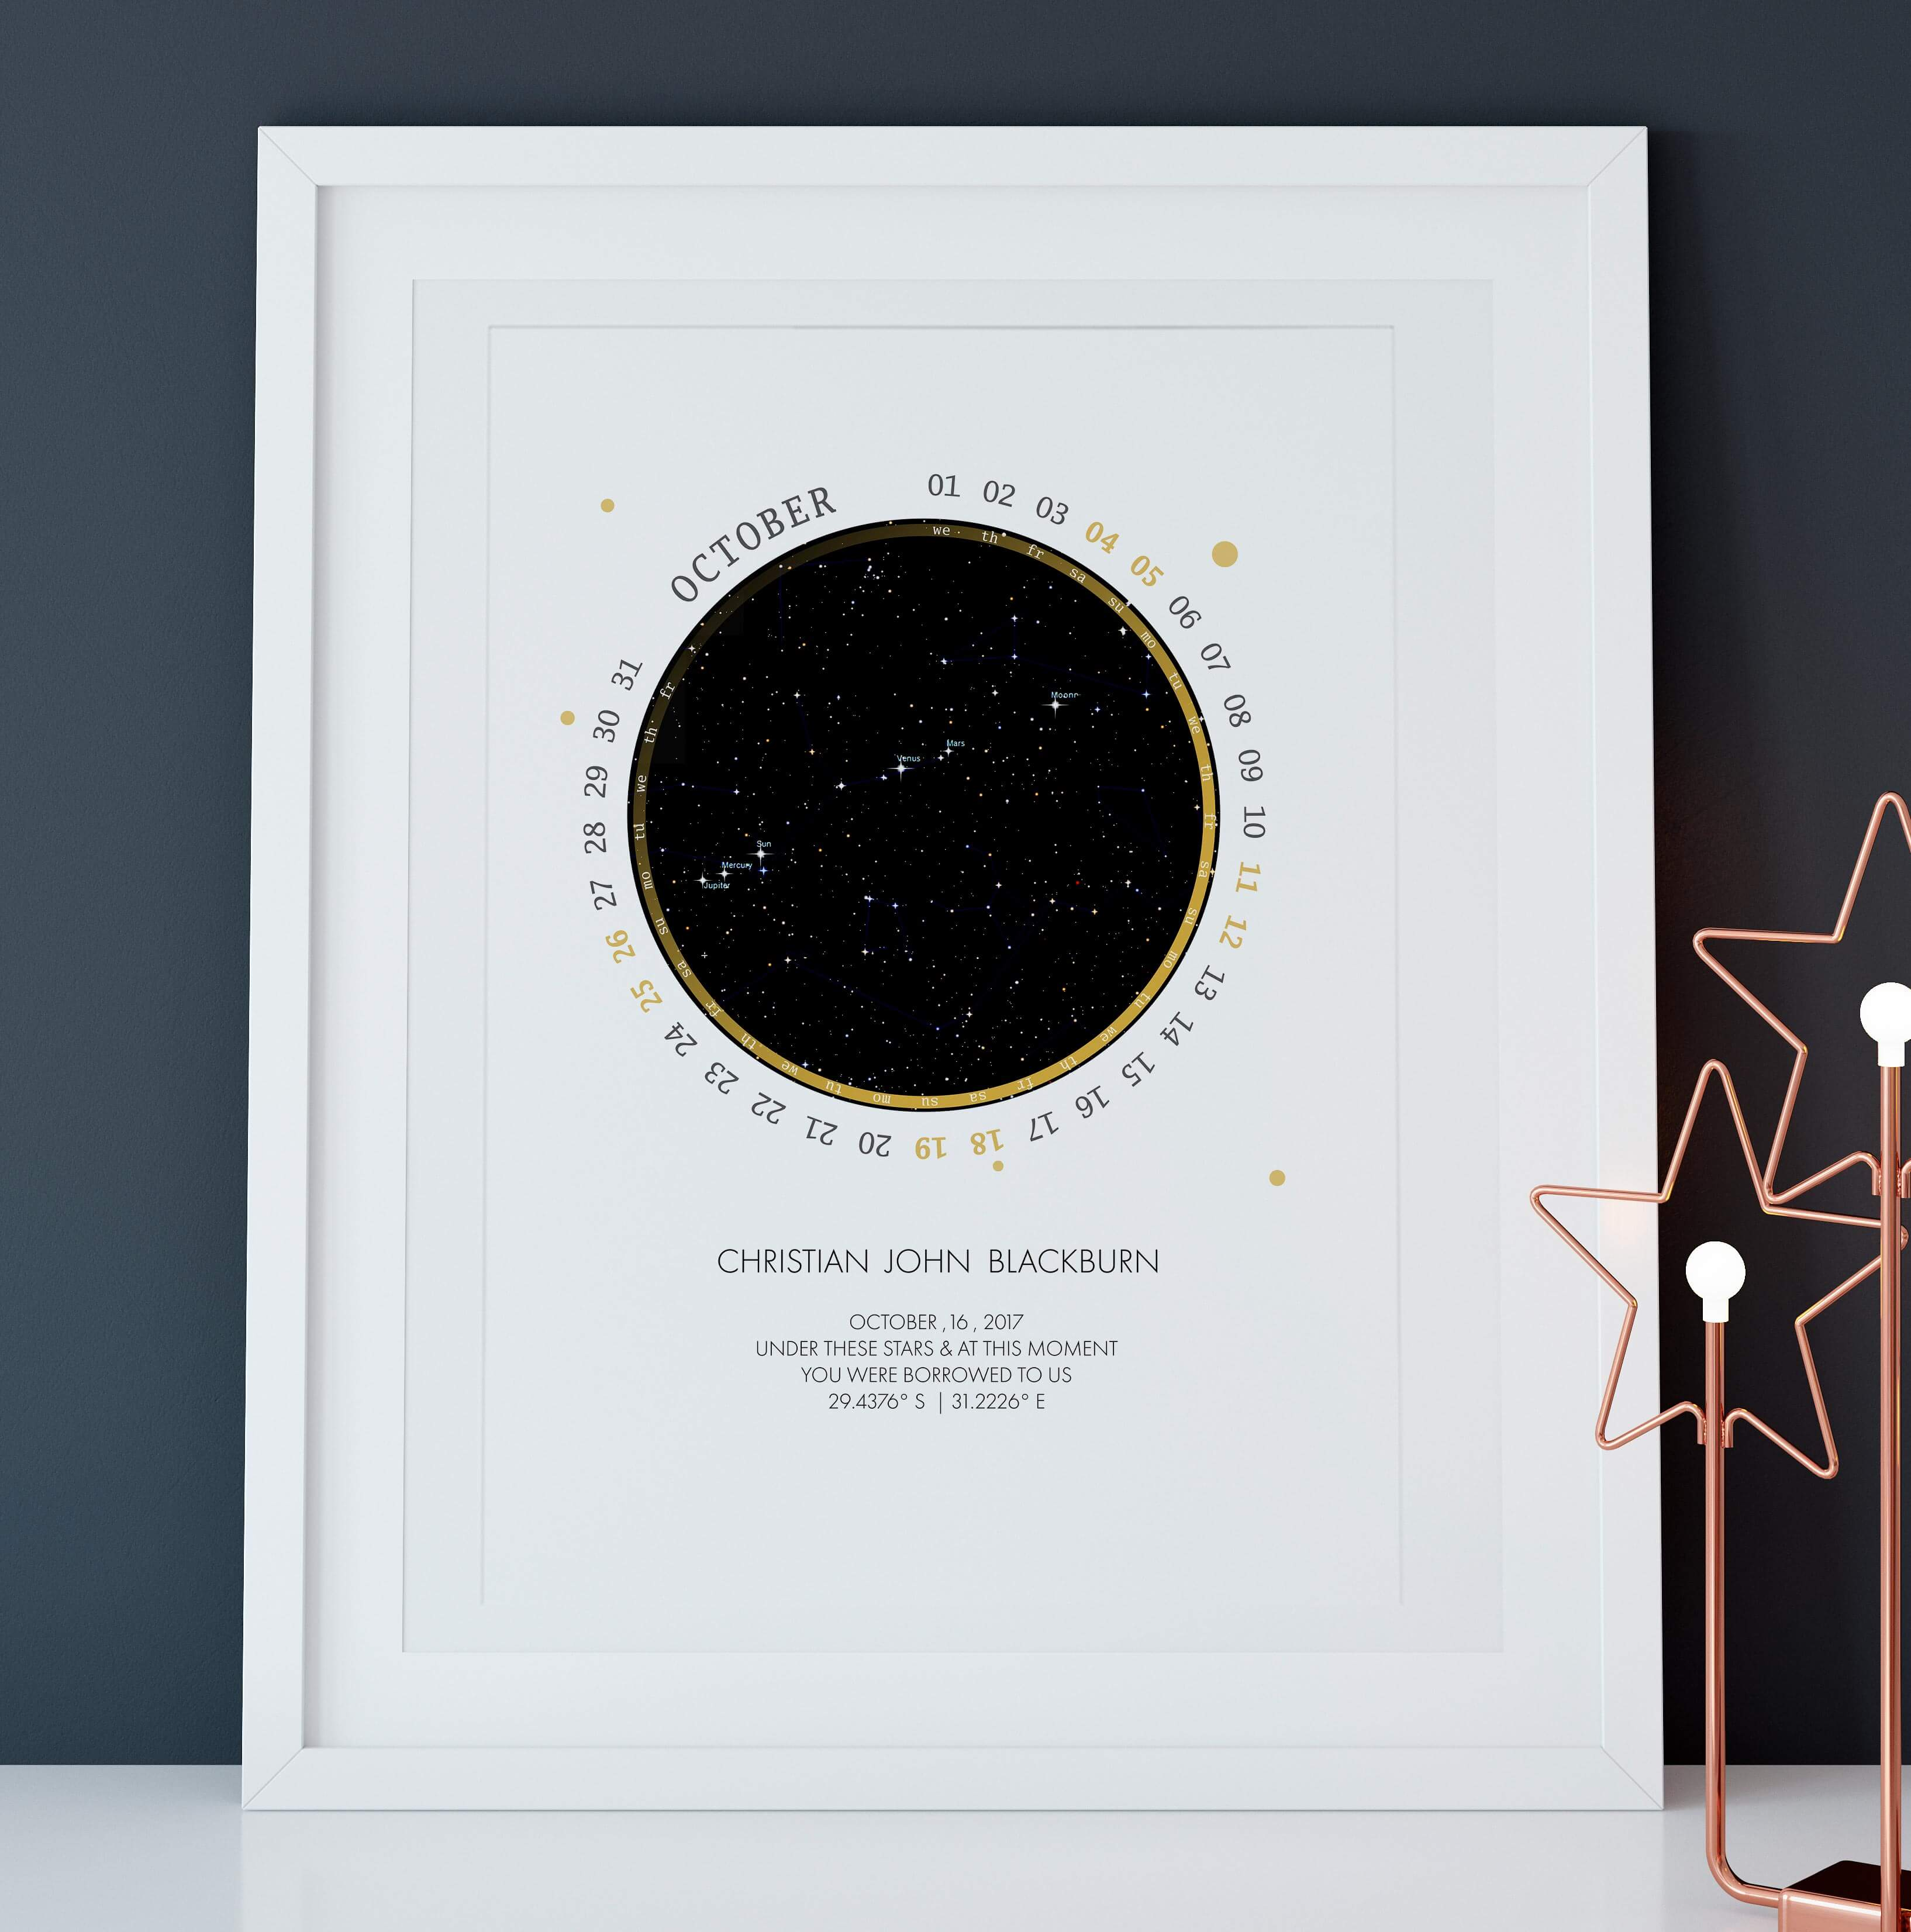 PERSONALISED STAR MAP - UNDER THESE STARS (with date circle) - Georgie & Moon